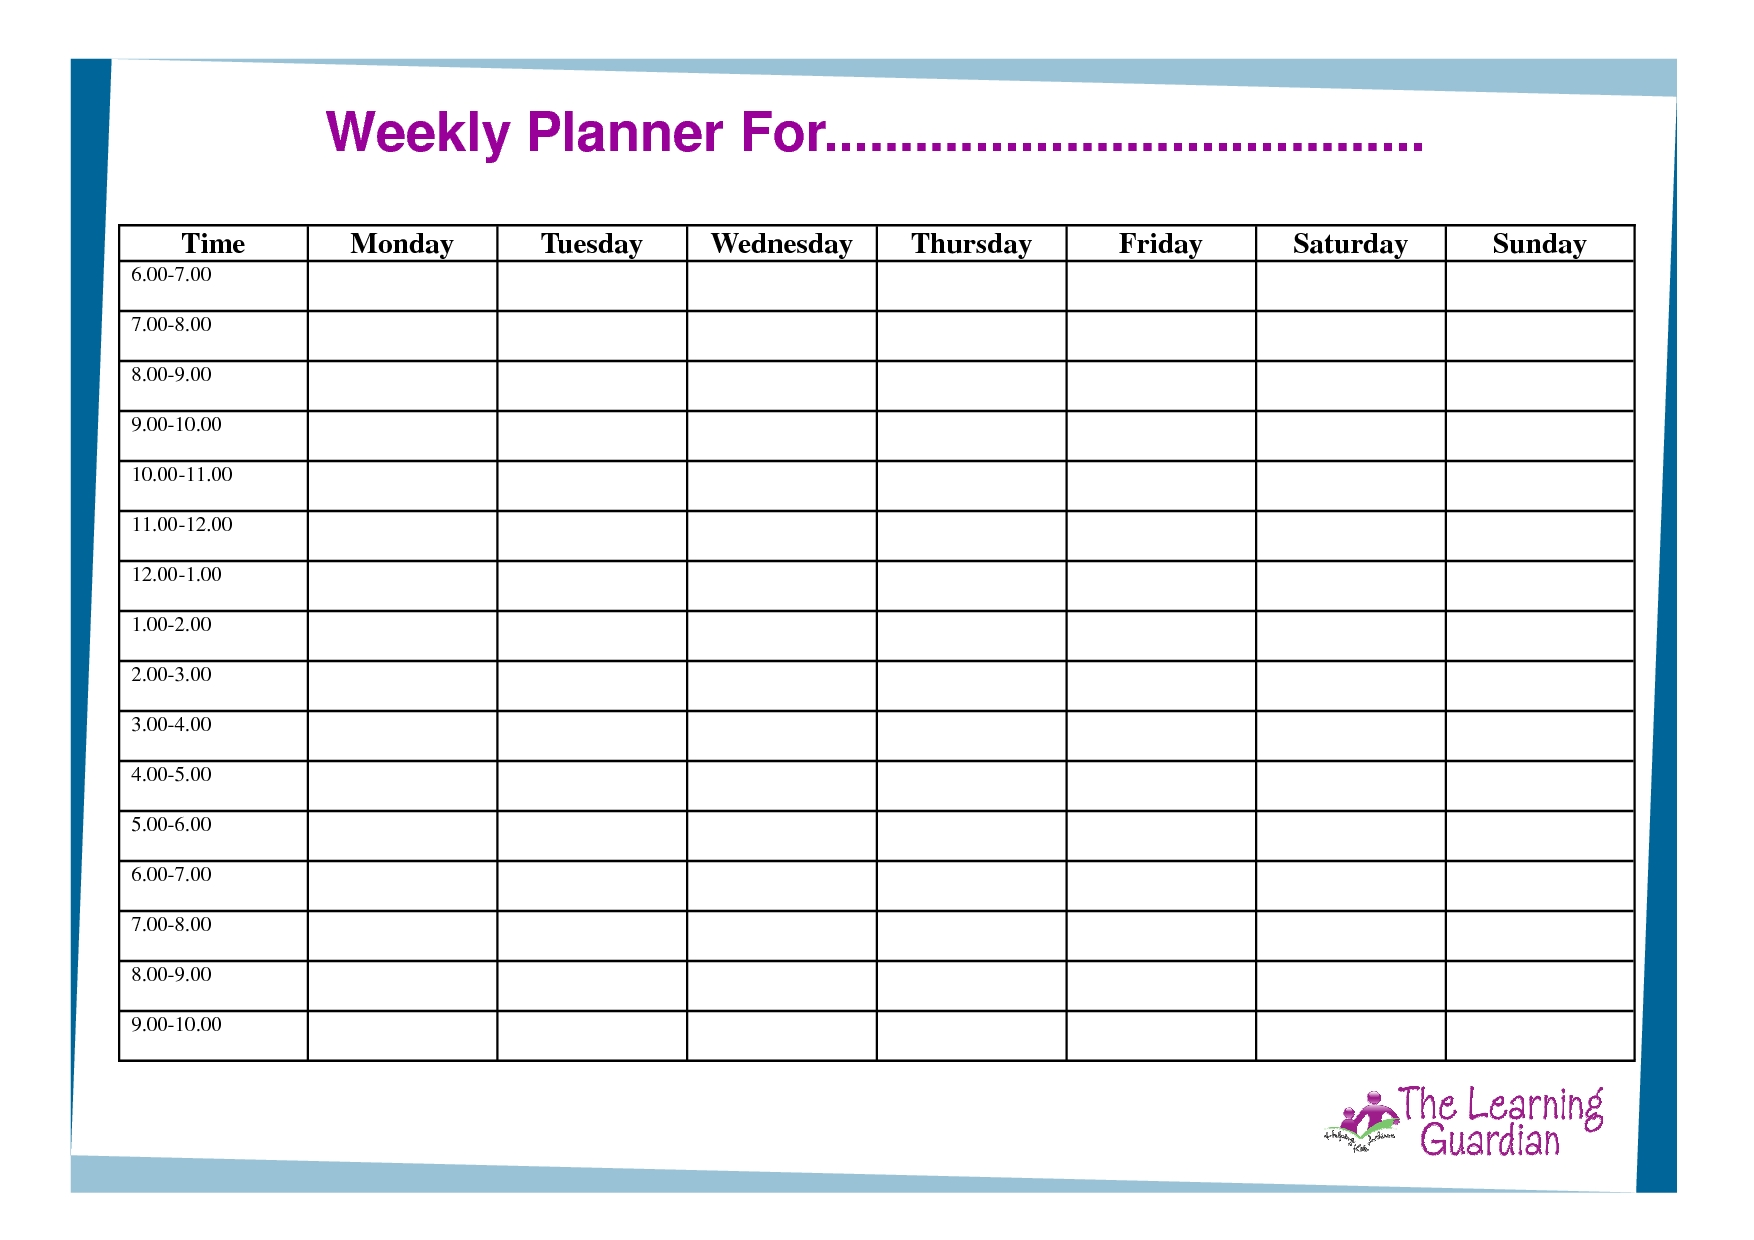 Free+Printable+Weekly+Planner+Templates In 2020 | Weekly  Free Printable Weekly Time Calendar